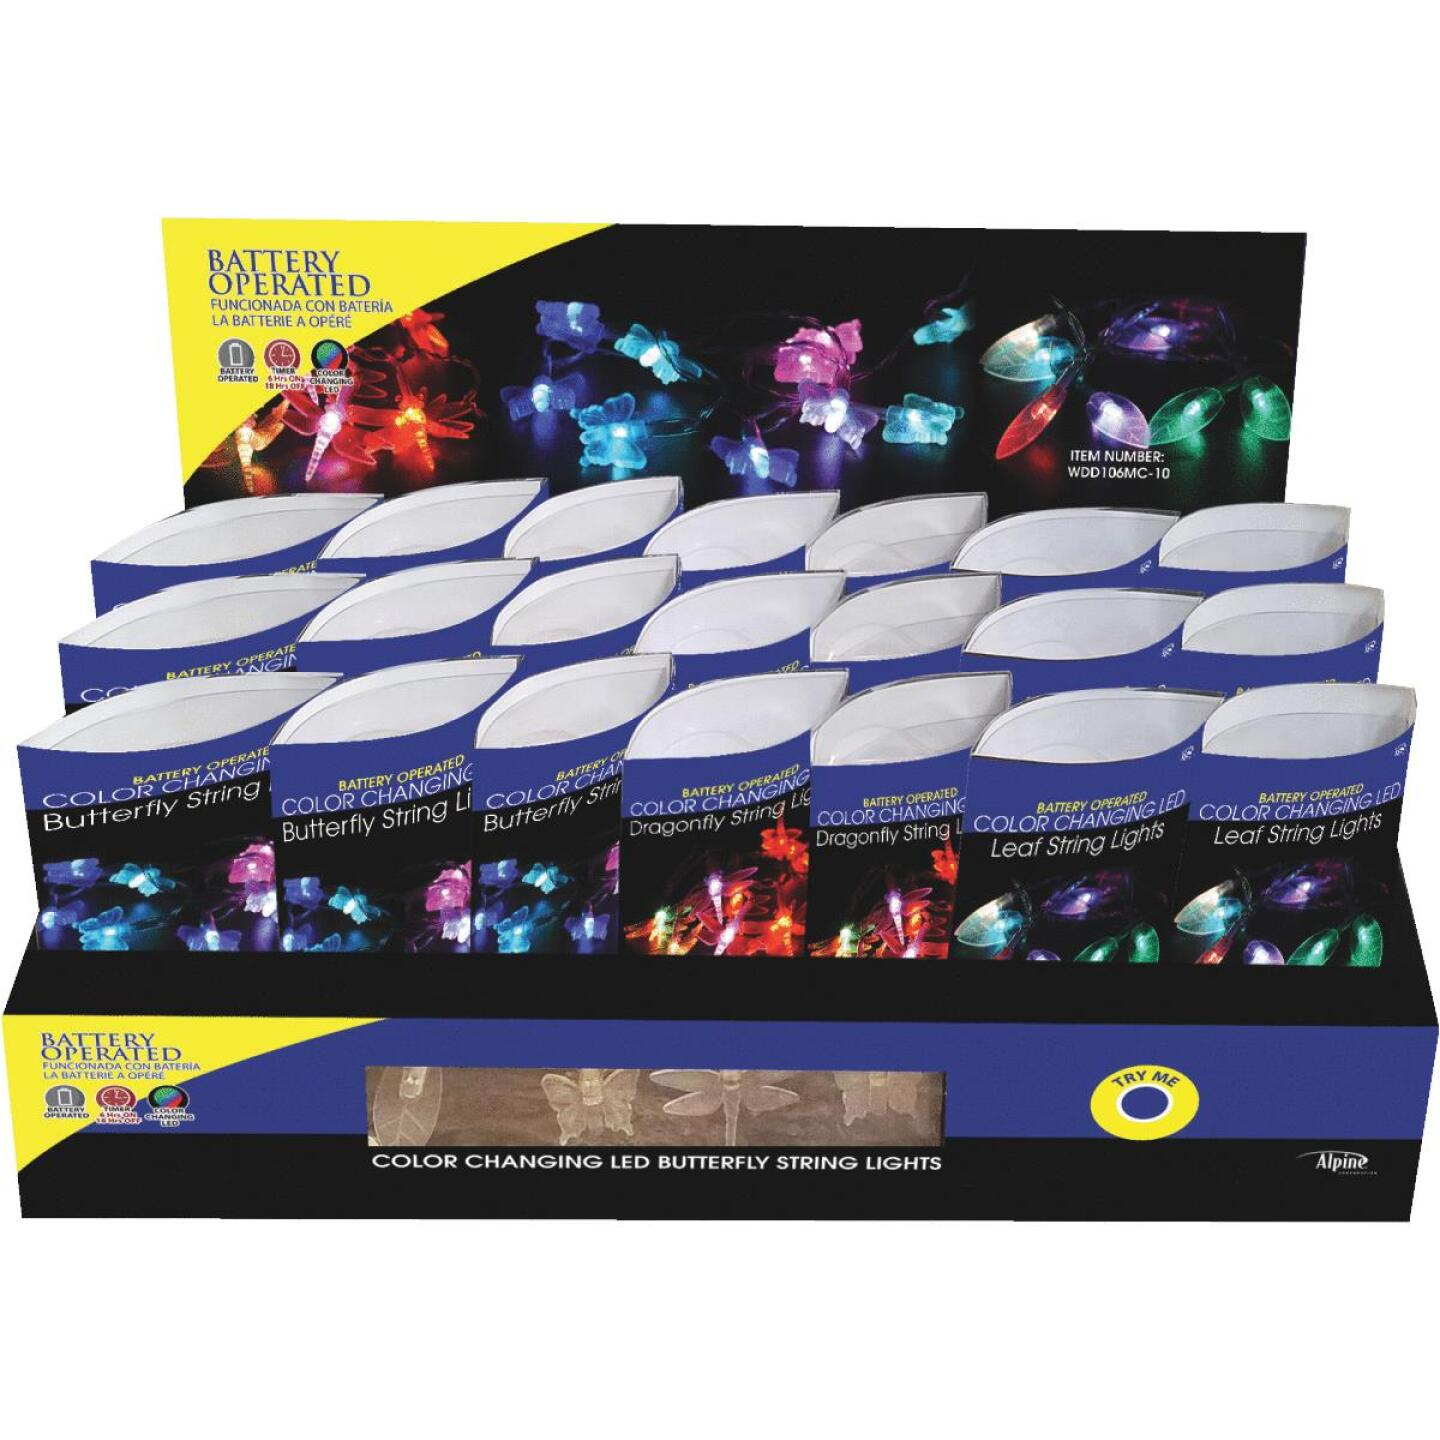 Alpine 5 Ft. 10-Light Clear Color-Changing Insect String Lights Image 6